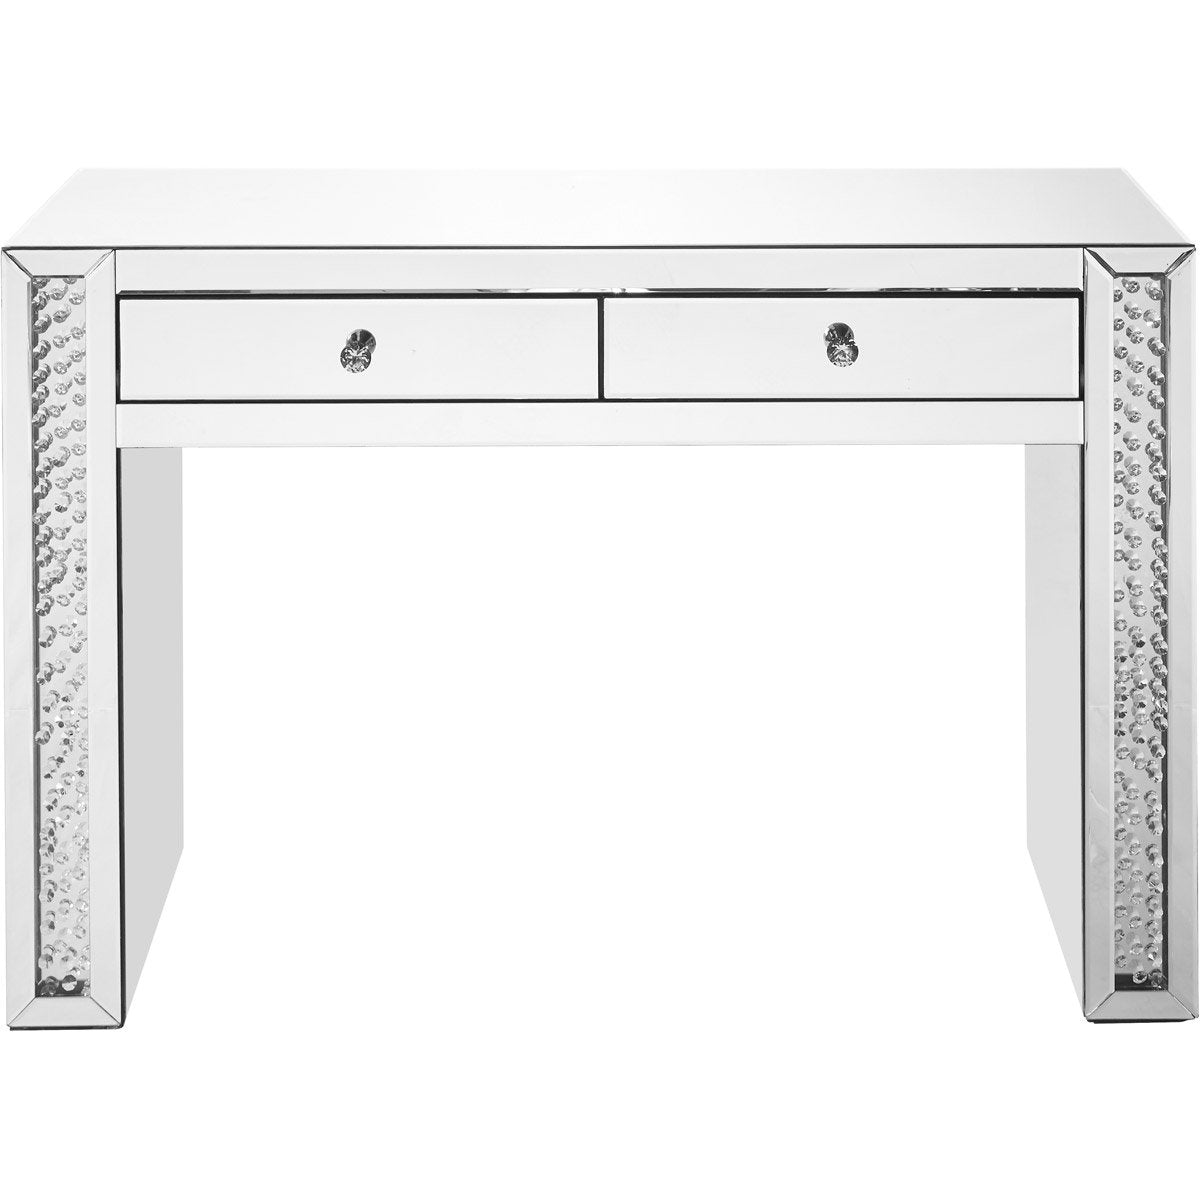 Sparkle 47 X 32 2 Drawer Clear Mirror And Crystal Vanity Table (Mf91017) Vanity